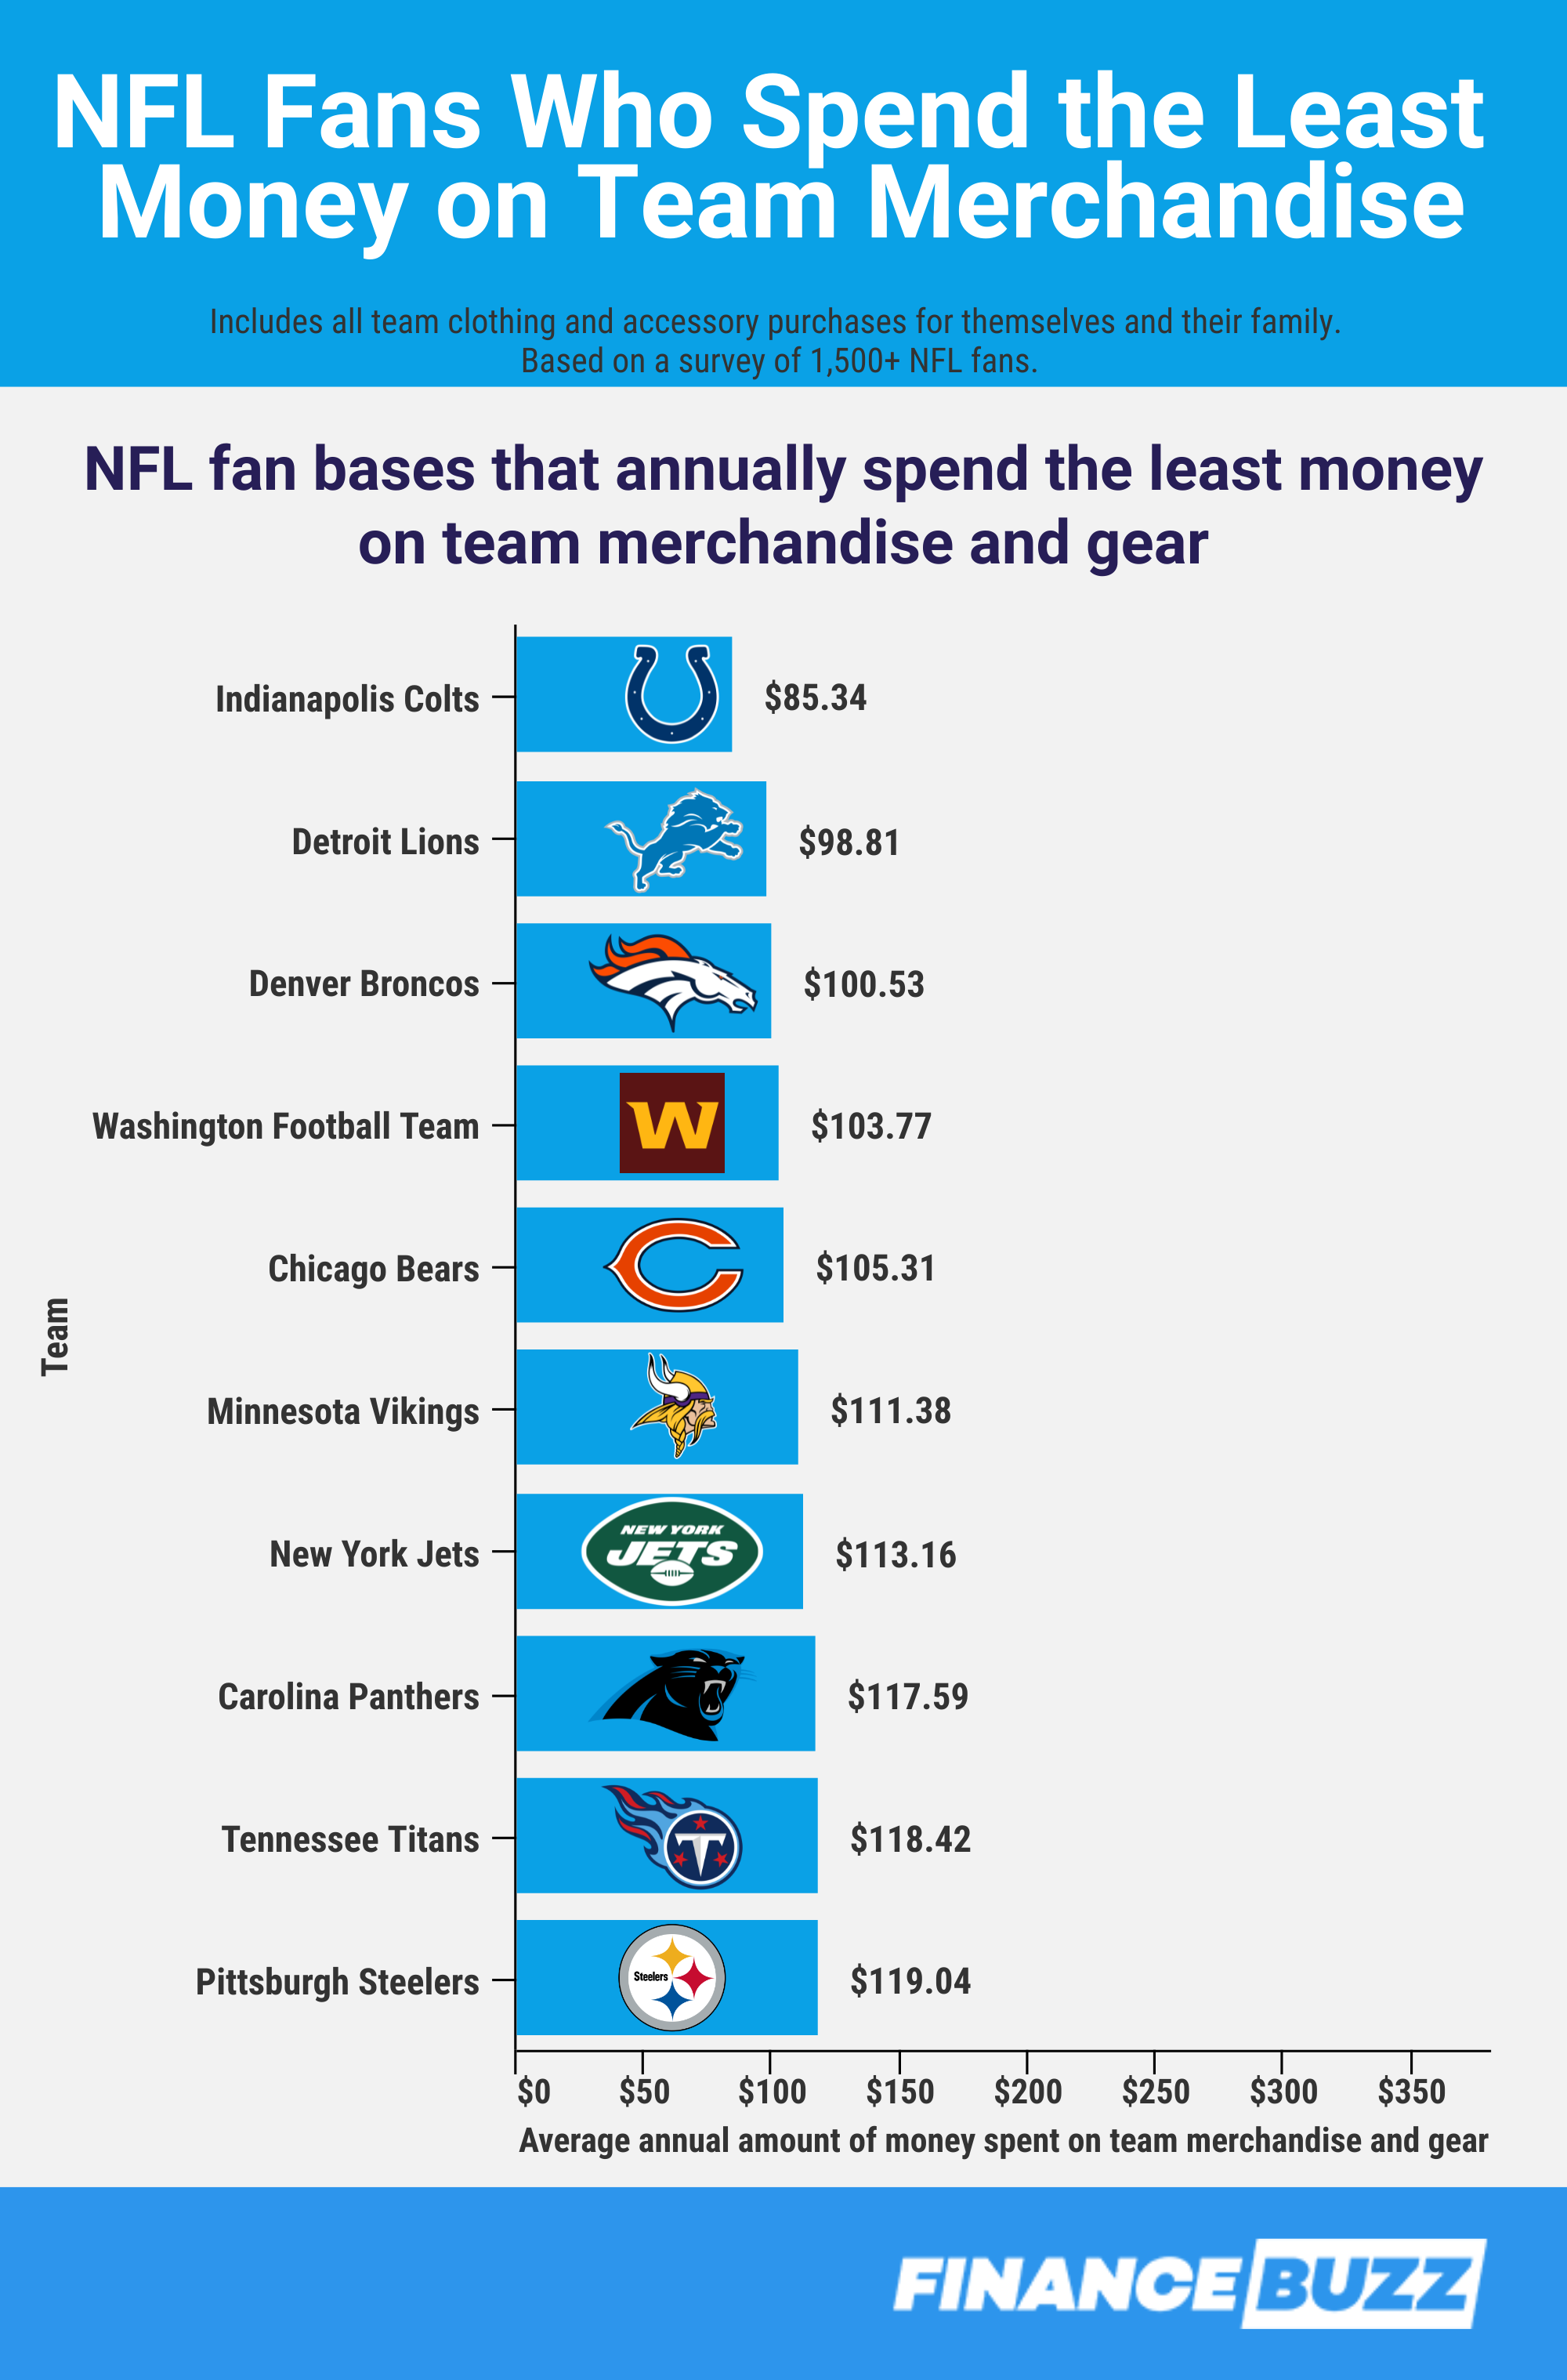 NFL fans that spend the least money on team merchandise